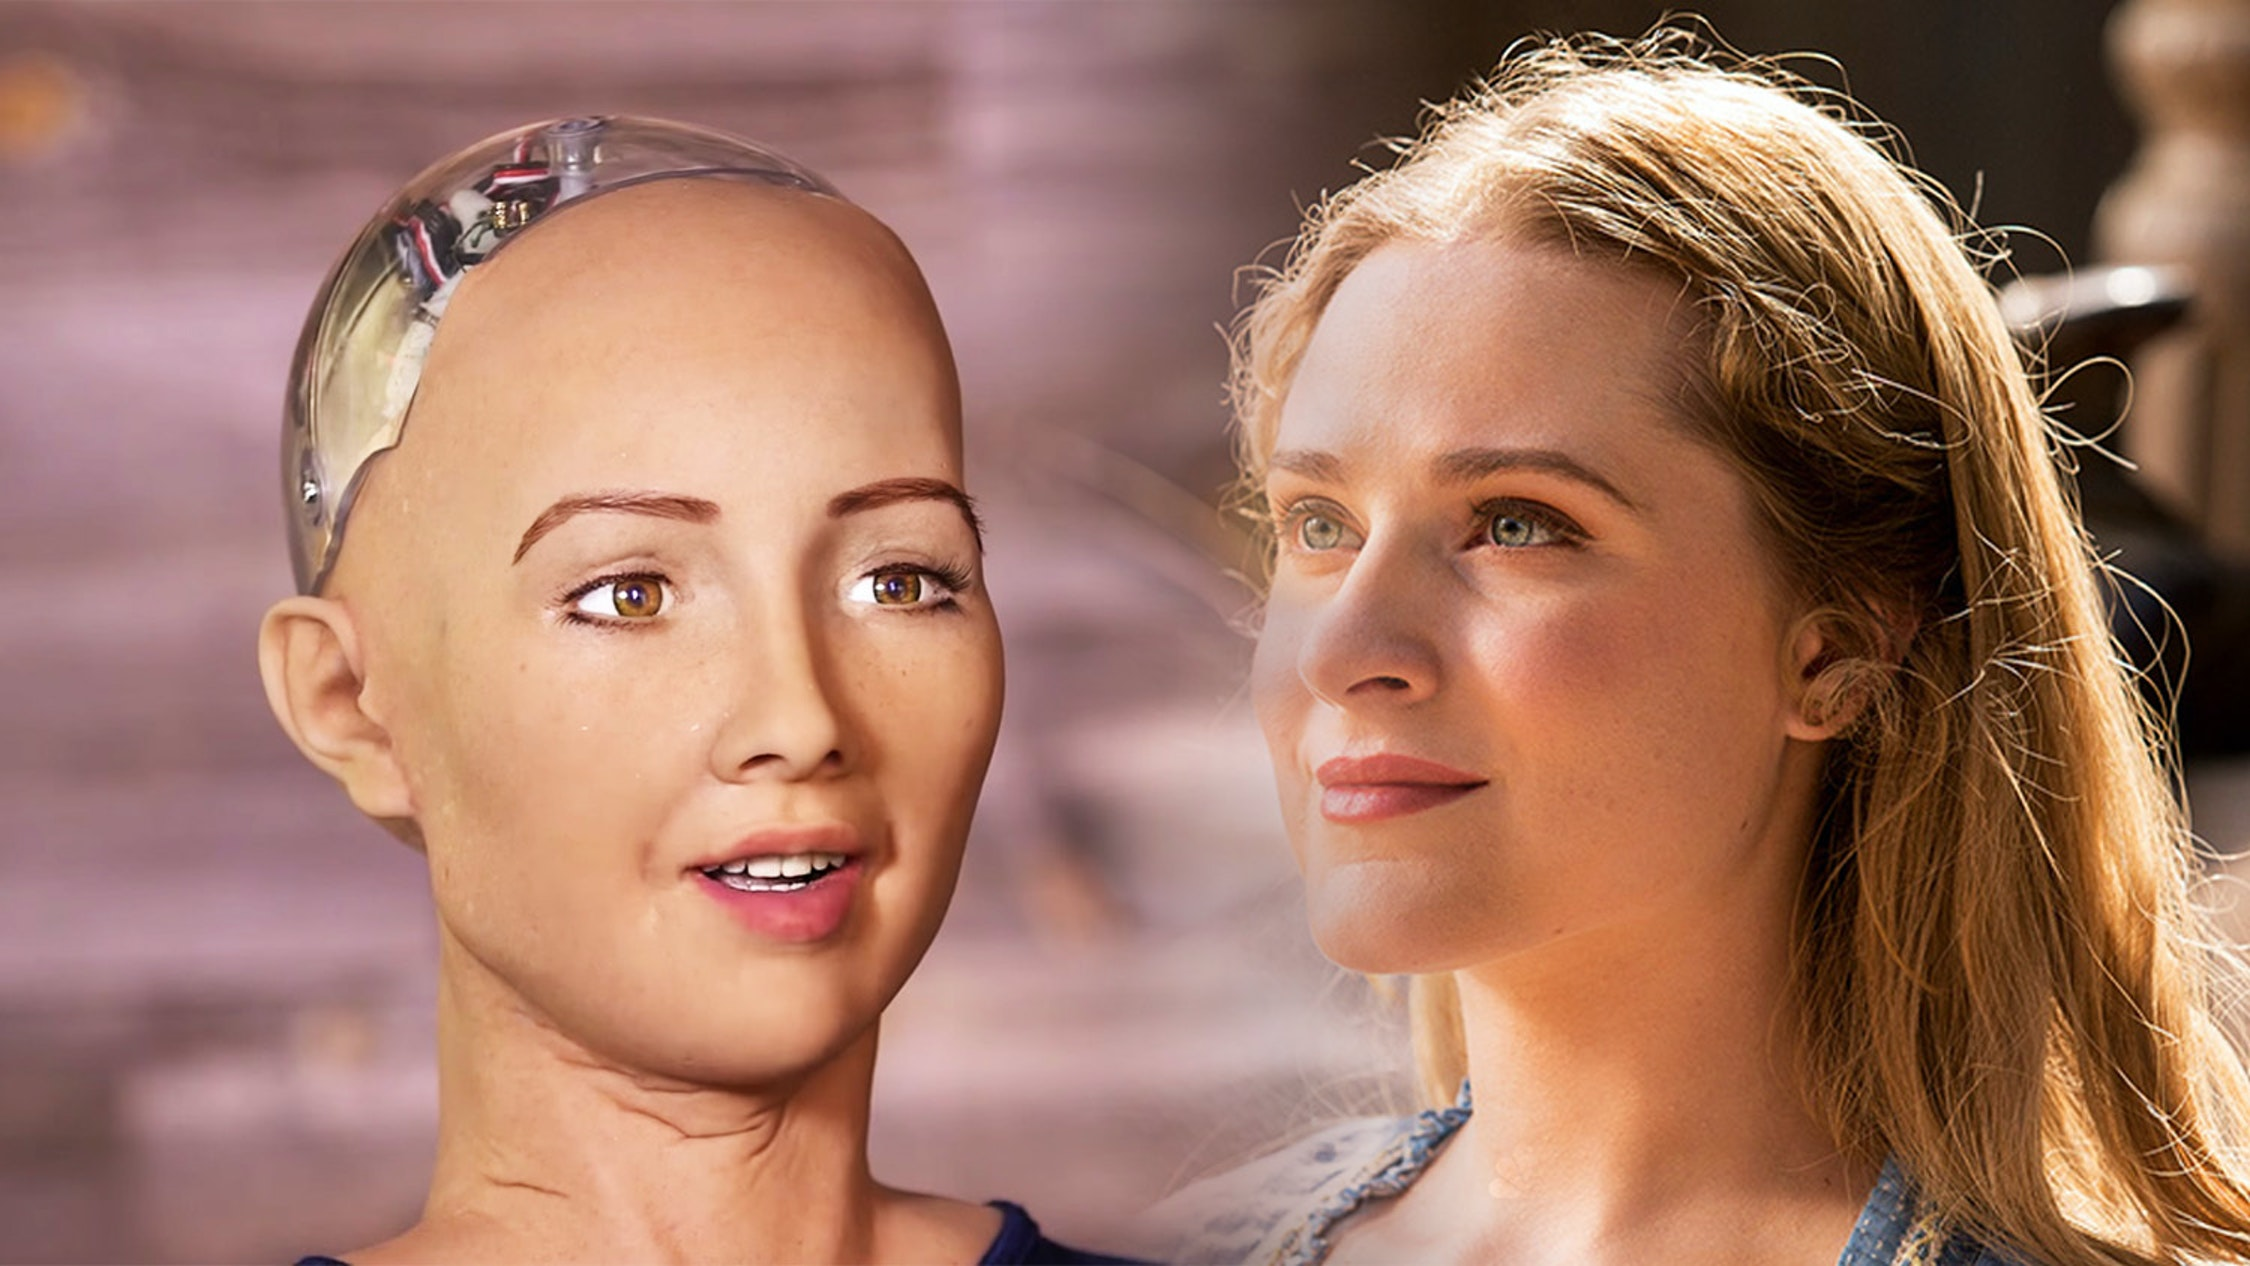 Sophia from Hanson Robotics, and Dolores Abernathy from 'Westworld.'